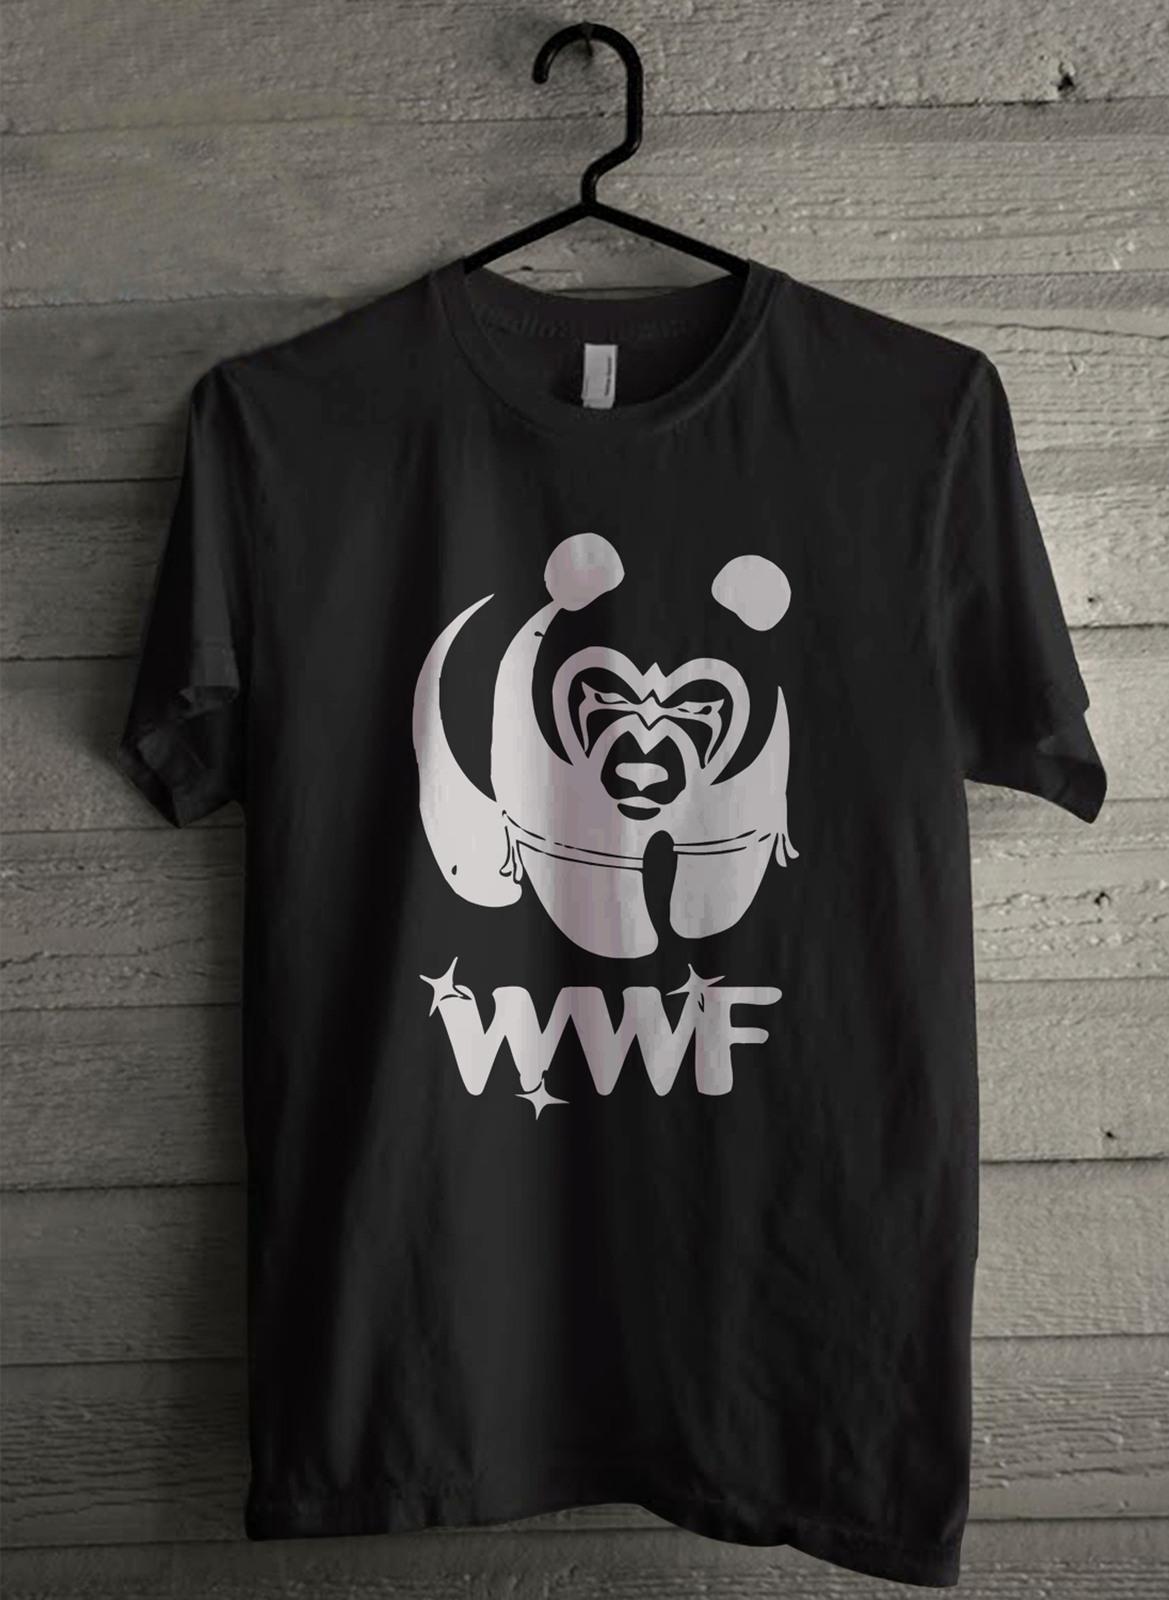 WWF PANDA - Custom Men's T-Shirt (3666)